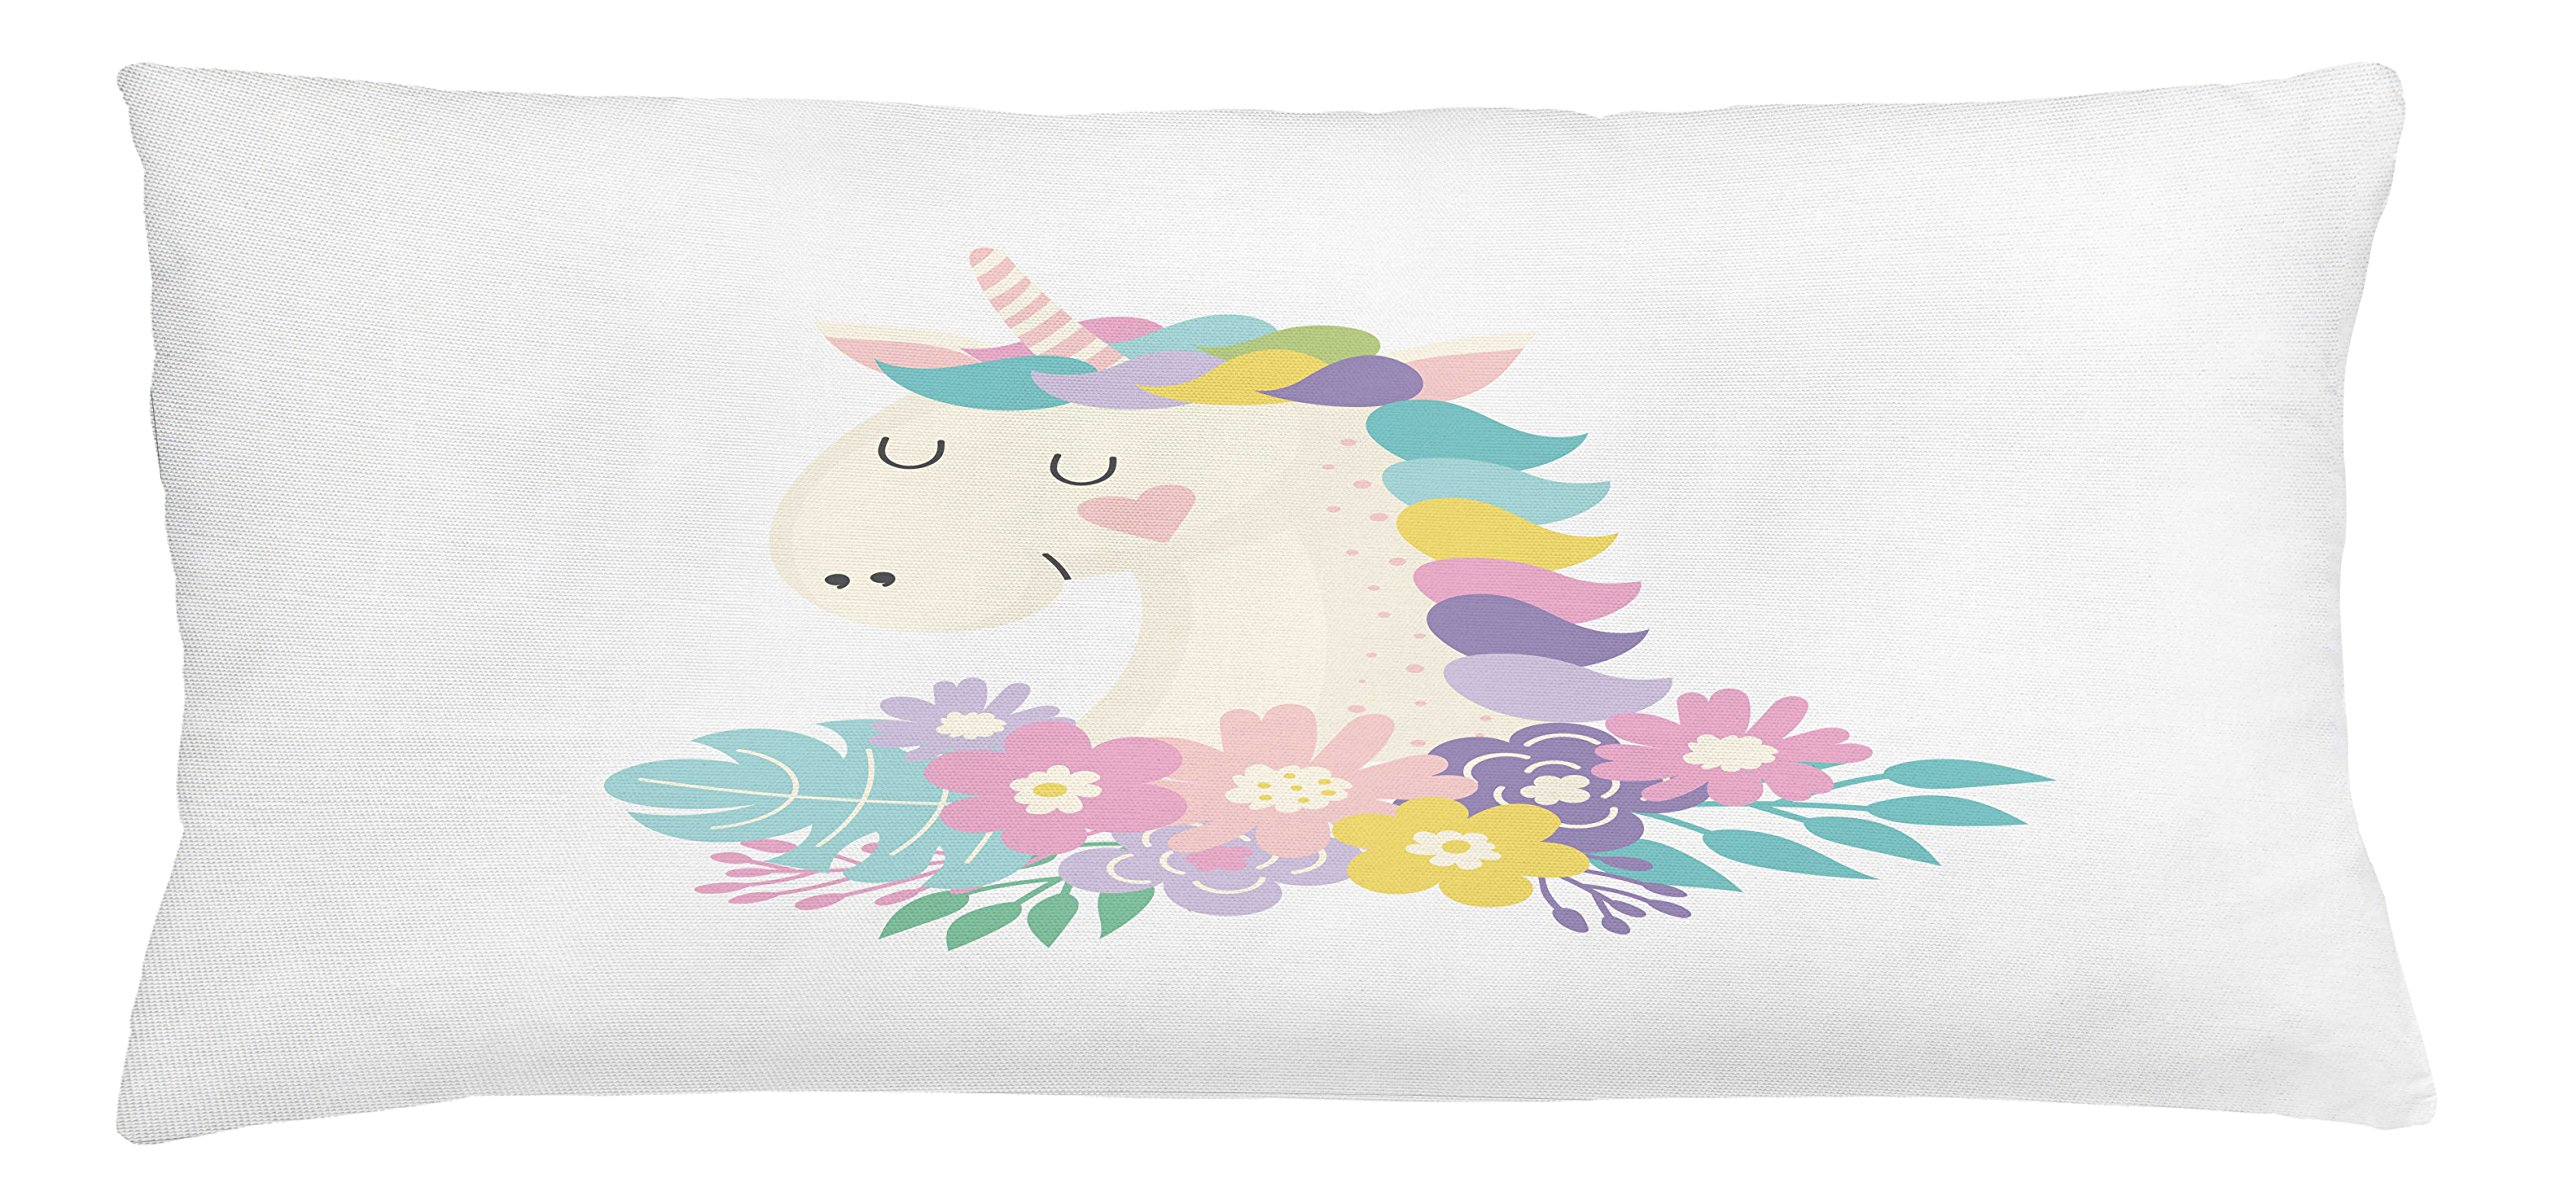 Lunarable Unicorn Throw Pillow Cushion Cover, Colorful Flowers with Mythical Horse Portrait with Horn Girly Cartoon Illustration, Decorative Square Accent Pillow Case, 36 X 16 inches, Multicolor